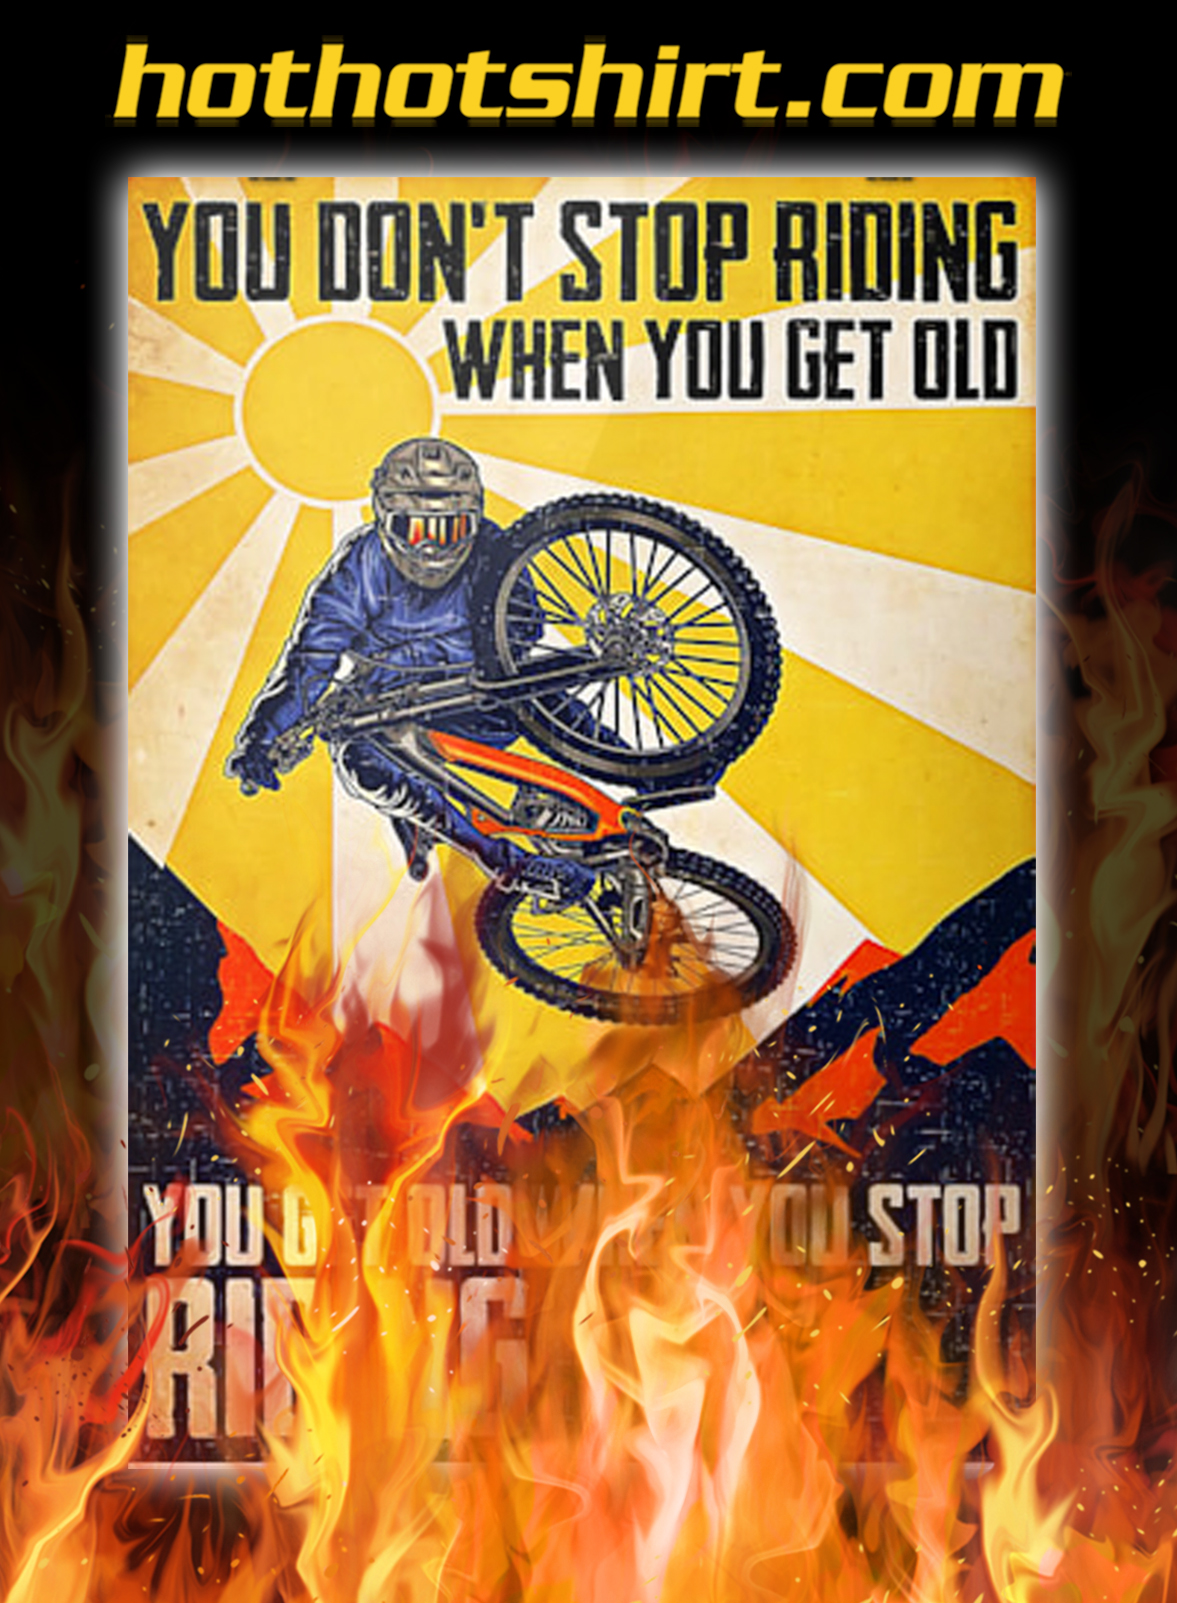 Road bike you don't stop riding when you get old poster - A3